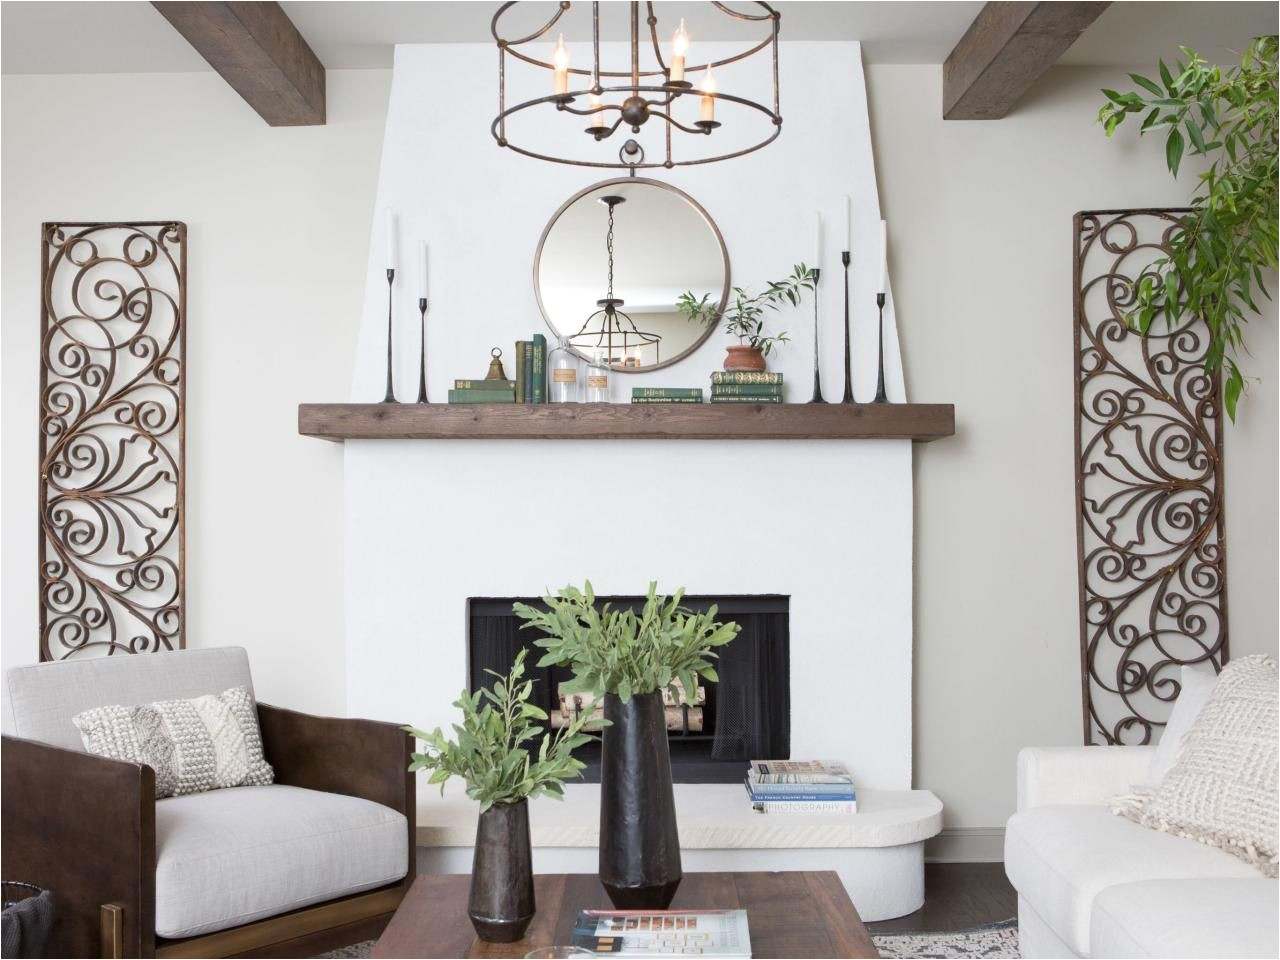 Hgtv Fixer Upper Paint Colors Season 2 Photos Hgtv S Fixer Upper with Chip and Joanna Gaines Hgtv My